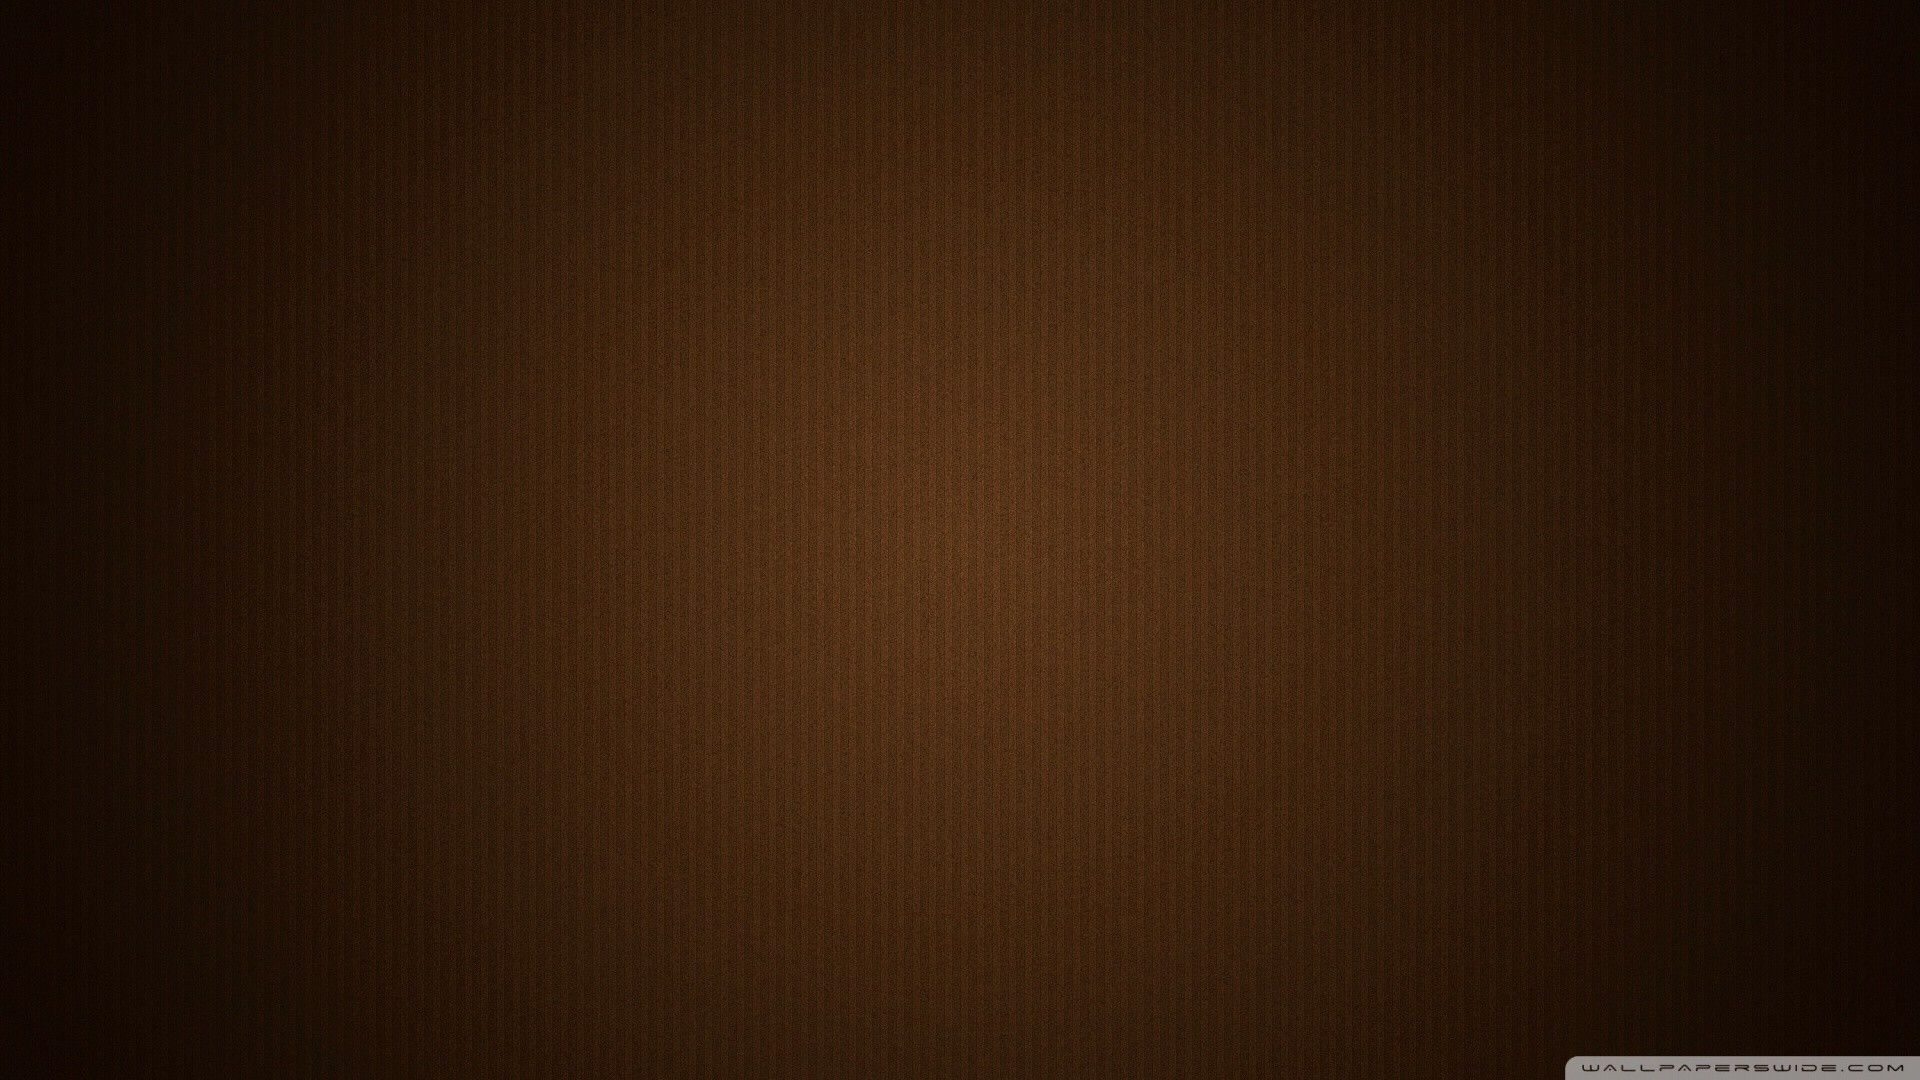 Plain Brown Wallpapers   Top Plain Brown Backgrounds 1920x1080